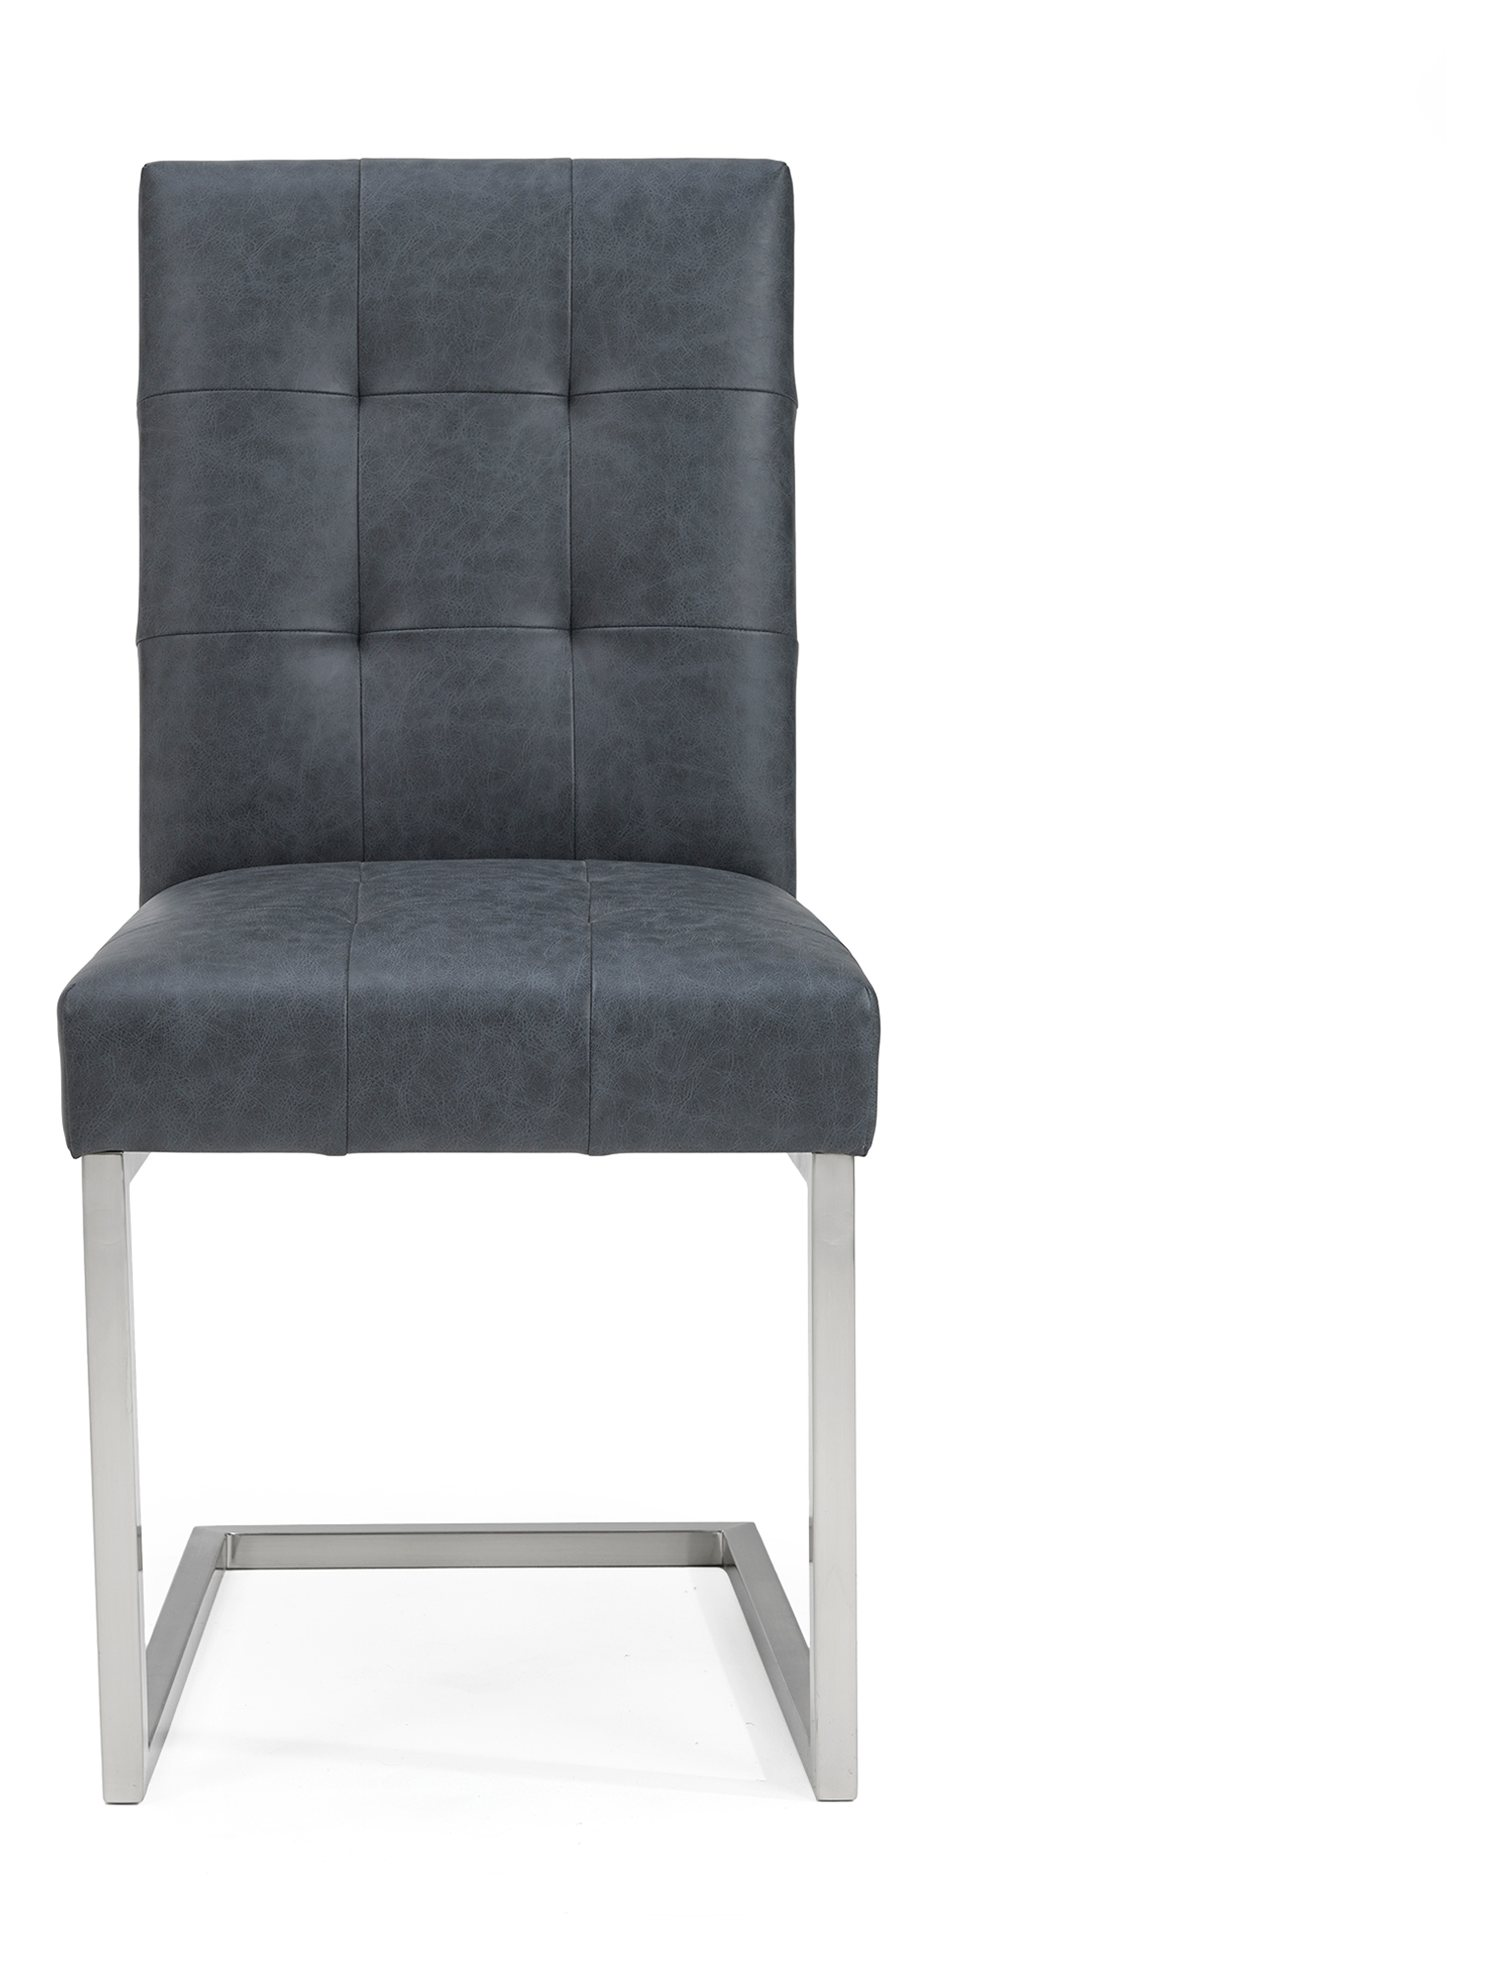 BRINDISI BONDED LEATHER DINING CHAIR - FRONT DETAIL